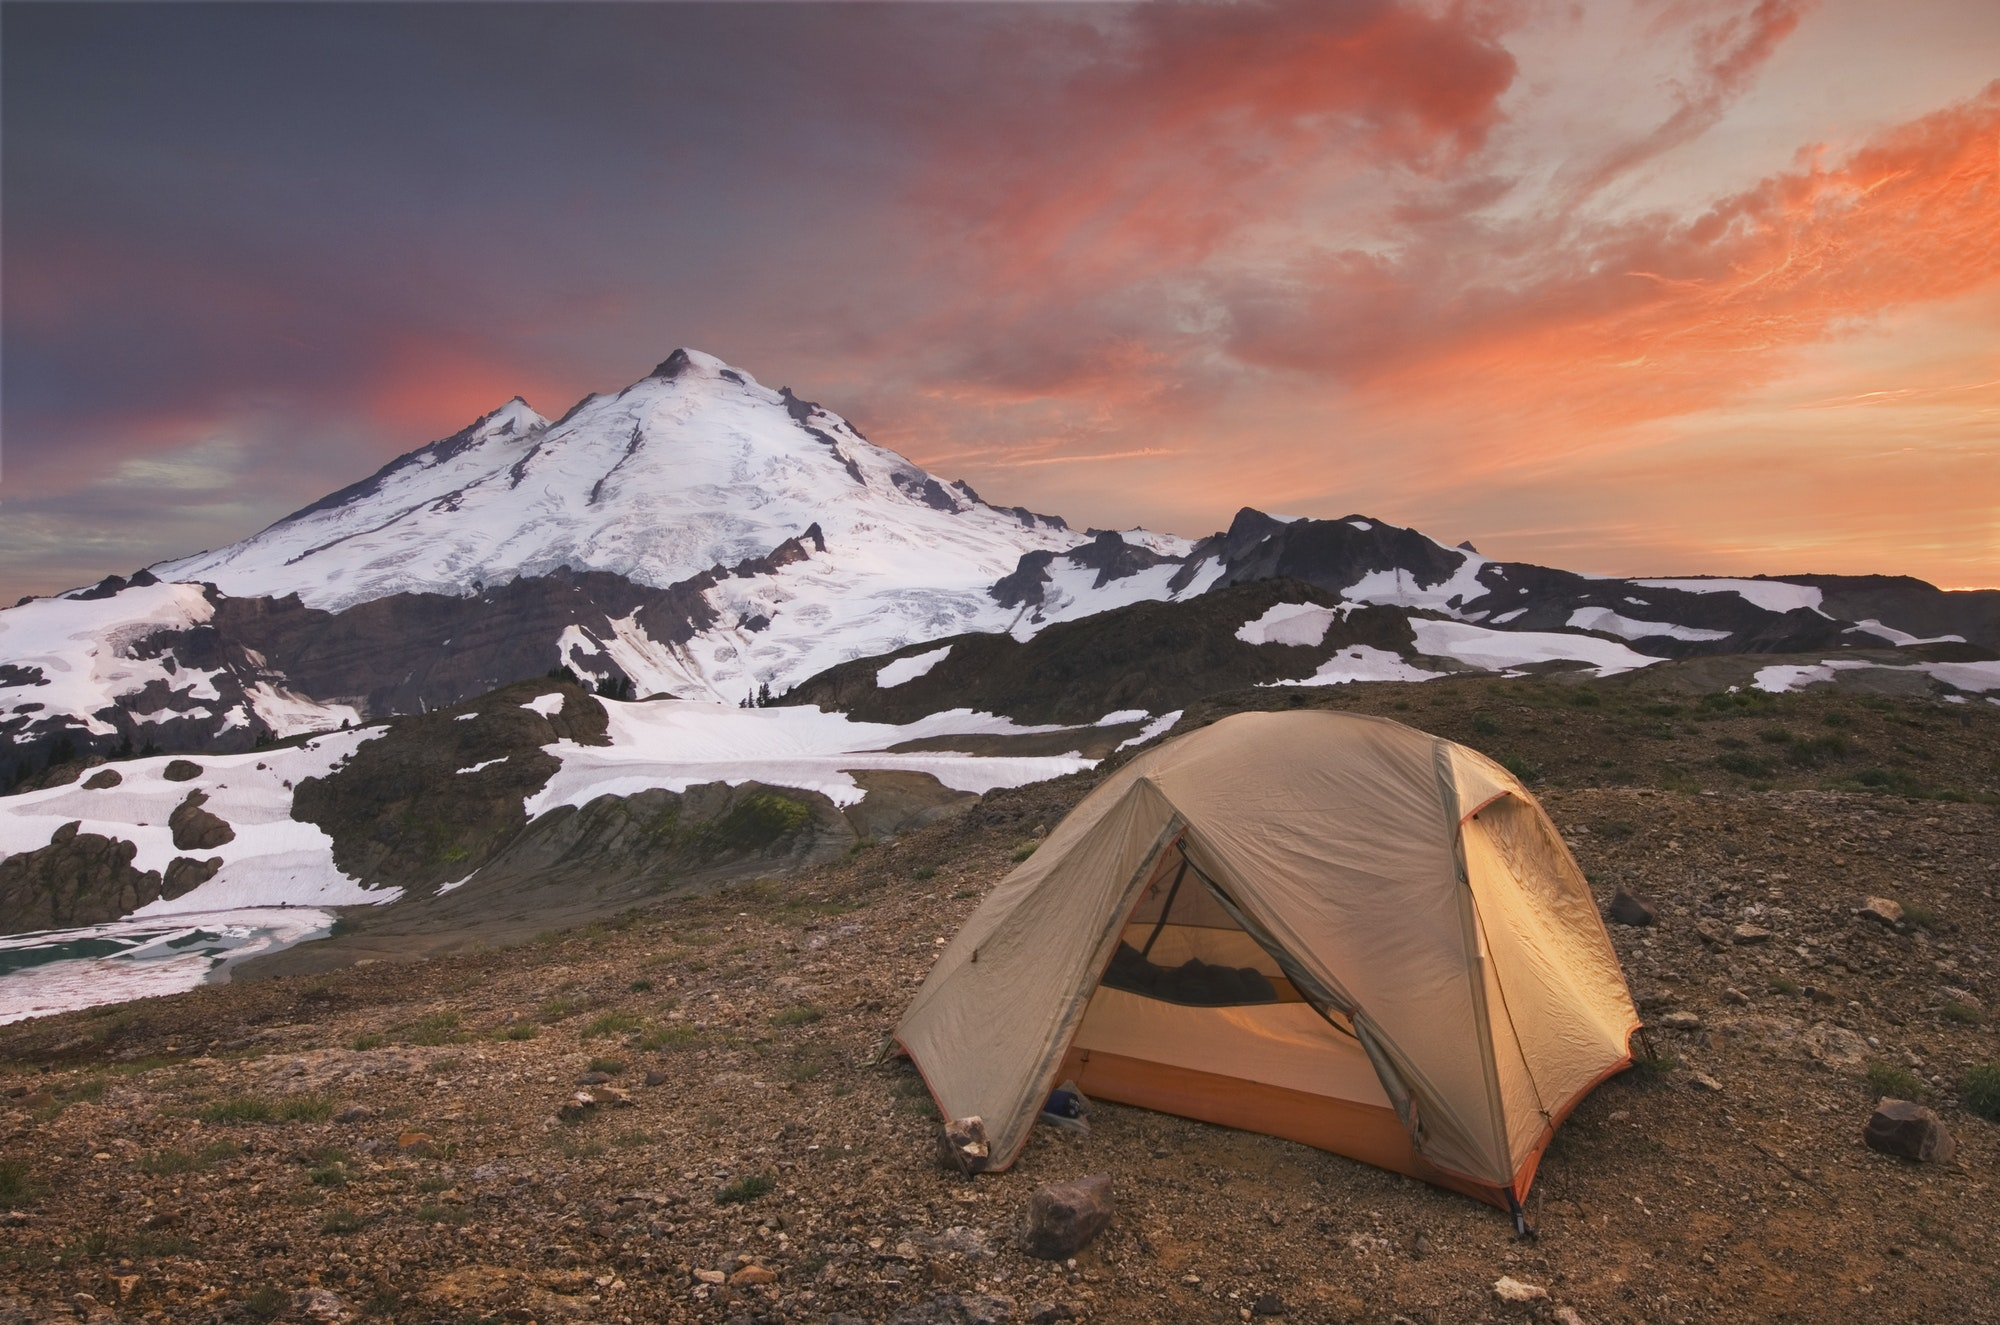 54844,Tent at campsite in snowy mountain landscape